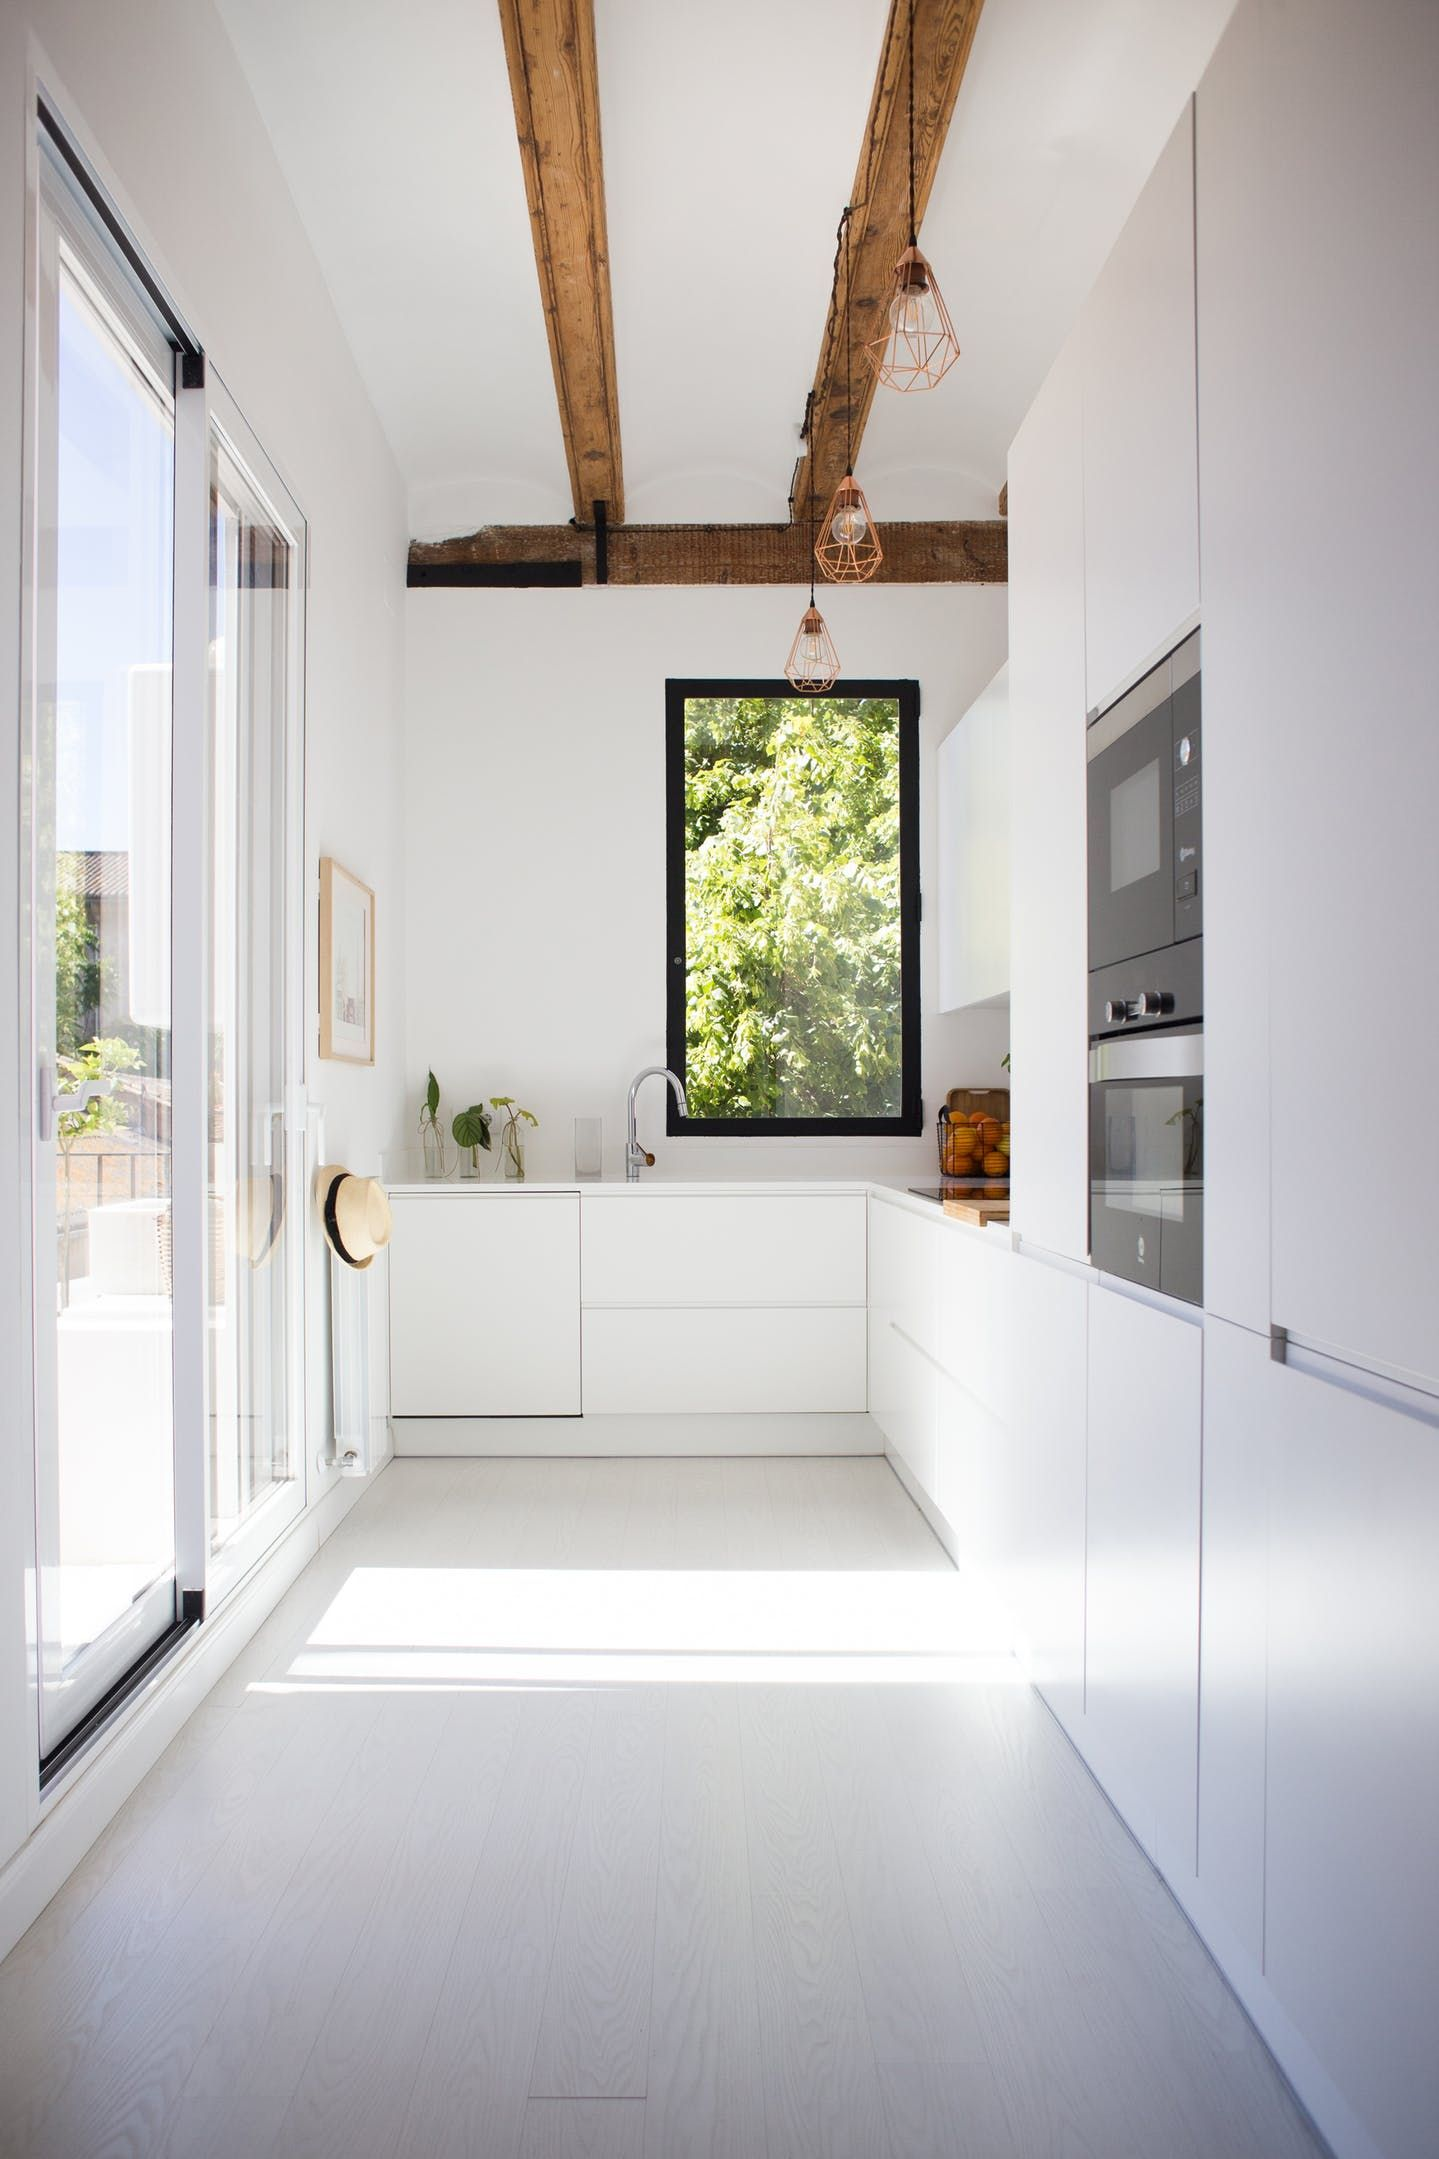 White modern kitchen with exposed beams | kitchen | Pinterest ...